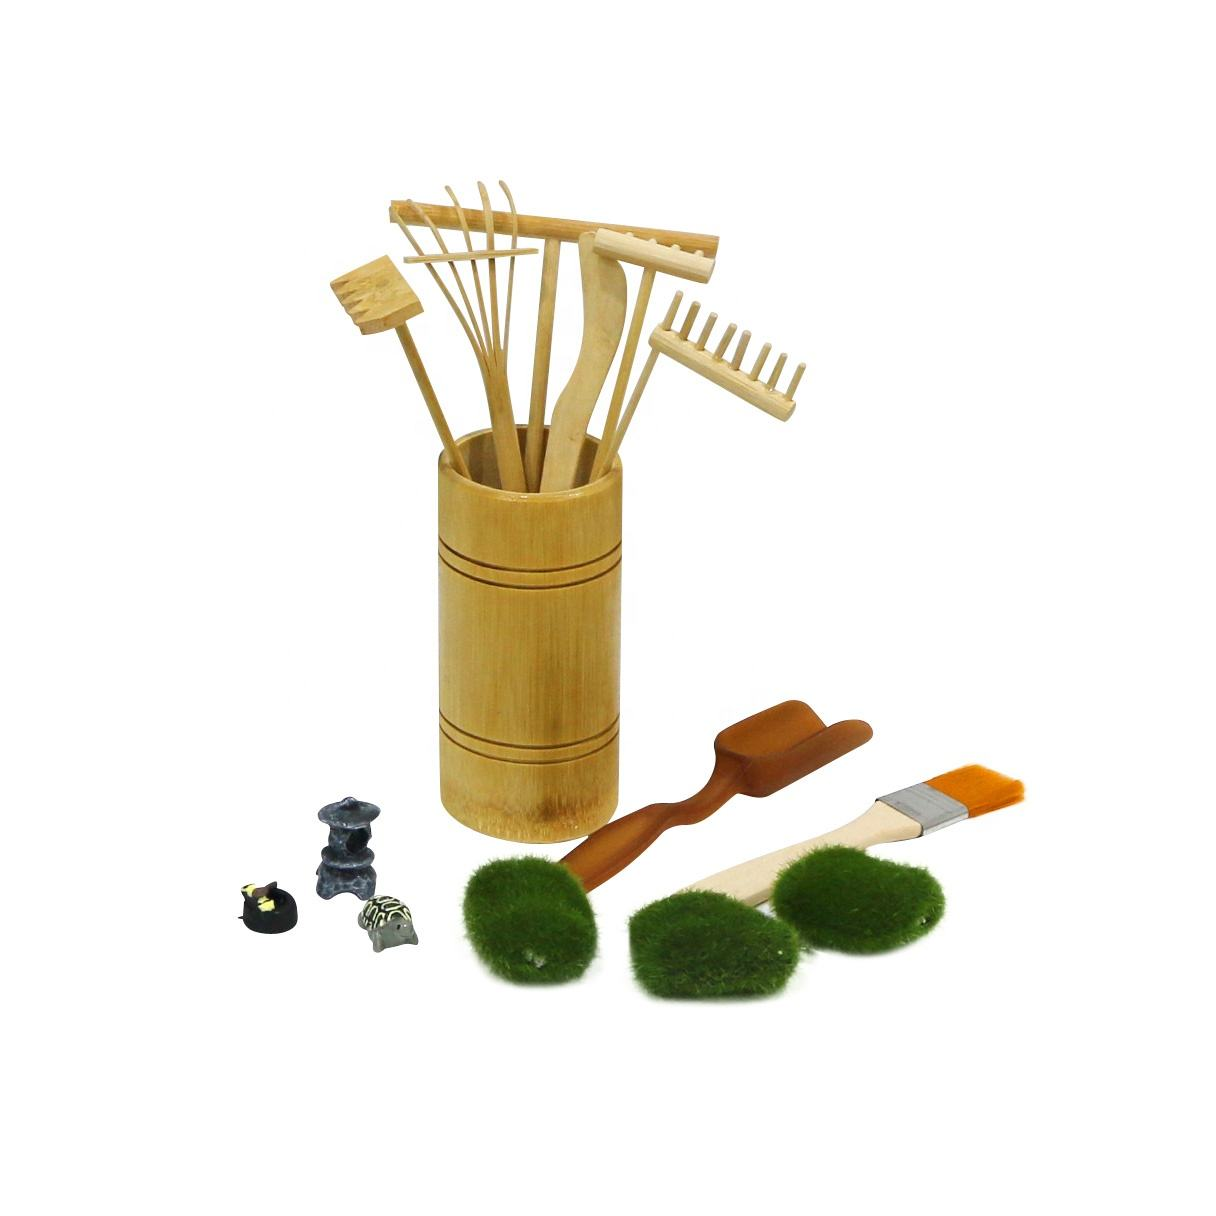 Mini Zen Garden Rake Tool Accessories Tabletop Meditation Rock Sand Garden Kits with Moss Rakes Brusher Spoon Figurines Holder